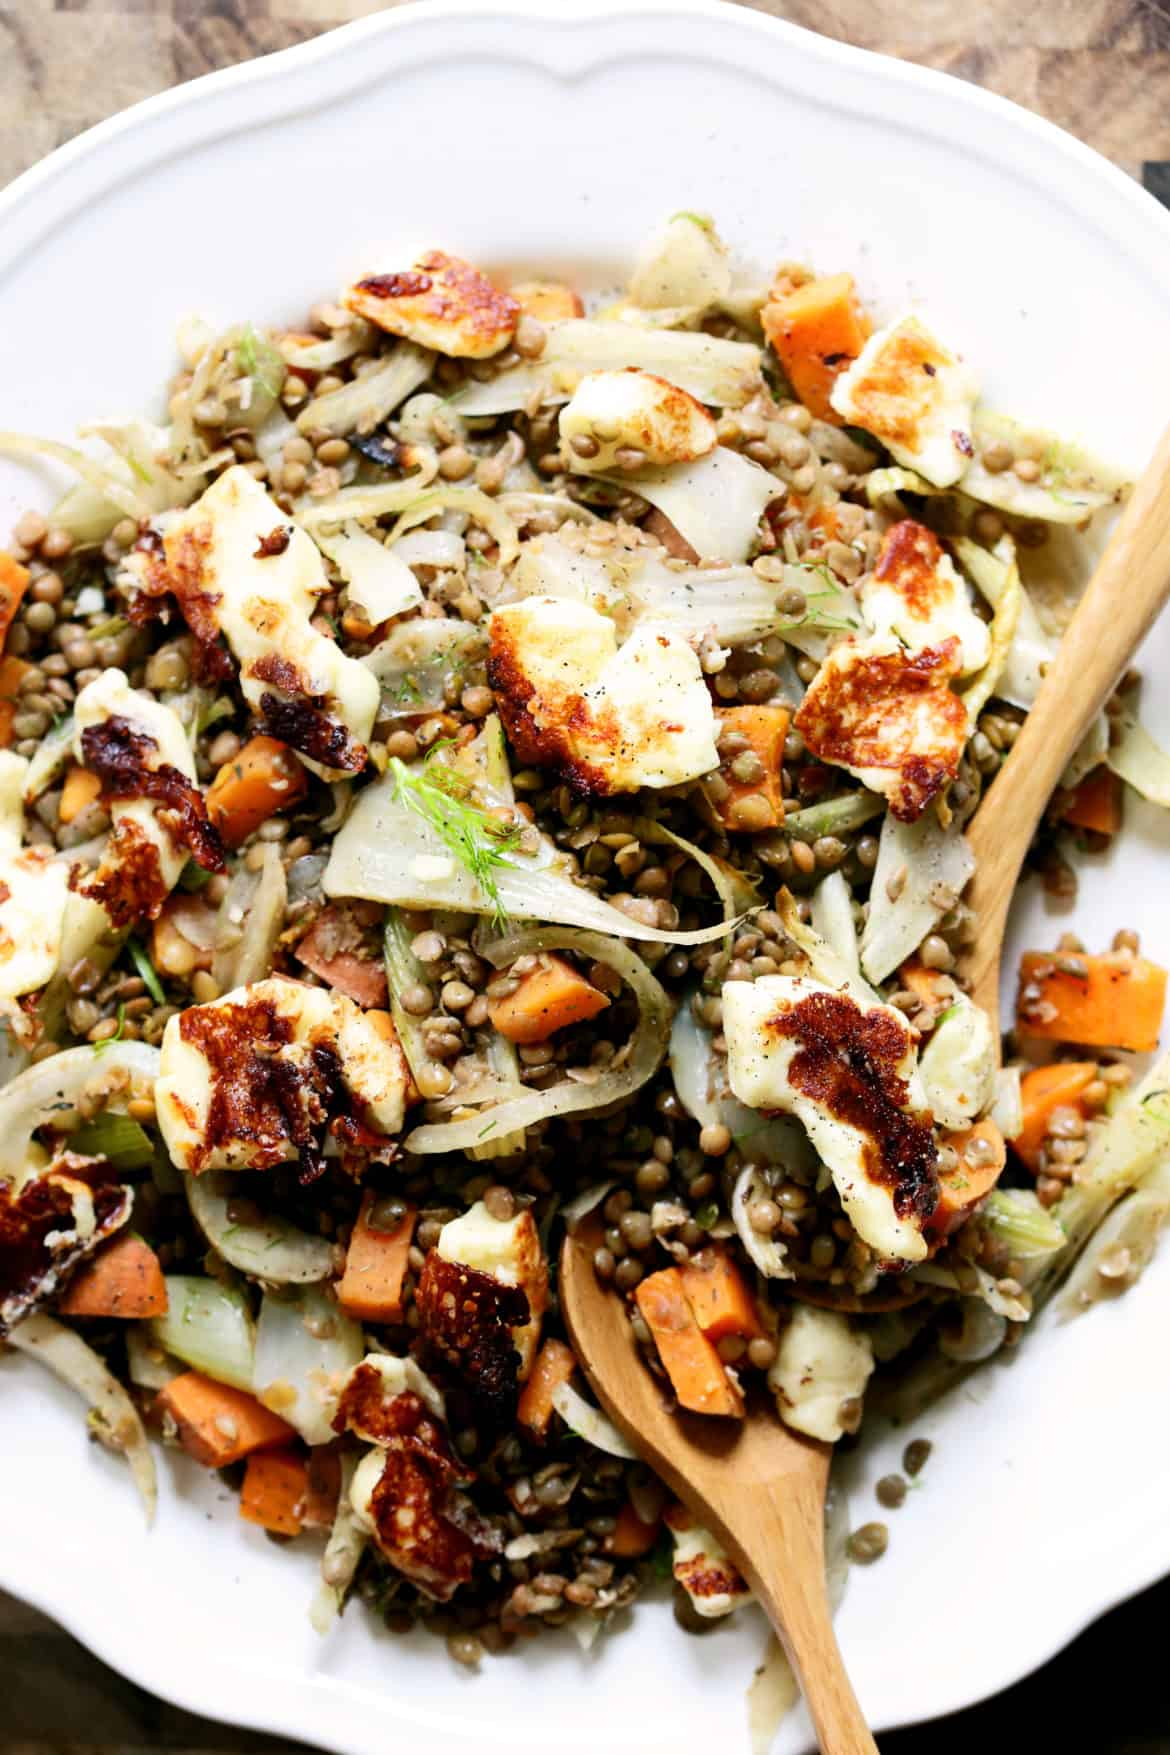 Warm Lentils with Fennel, Sweet Potatoes, and Halloumi